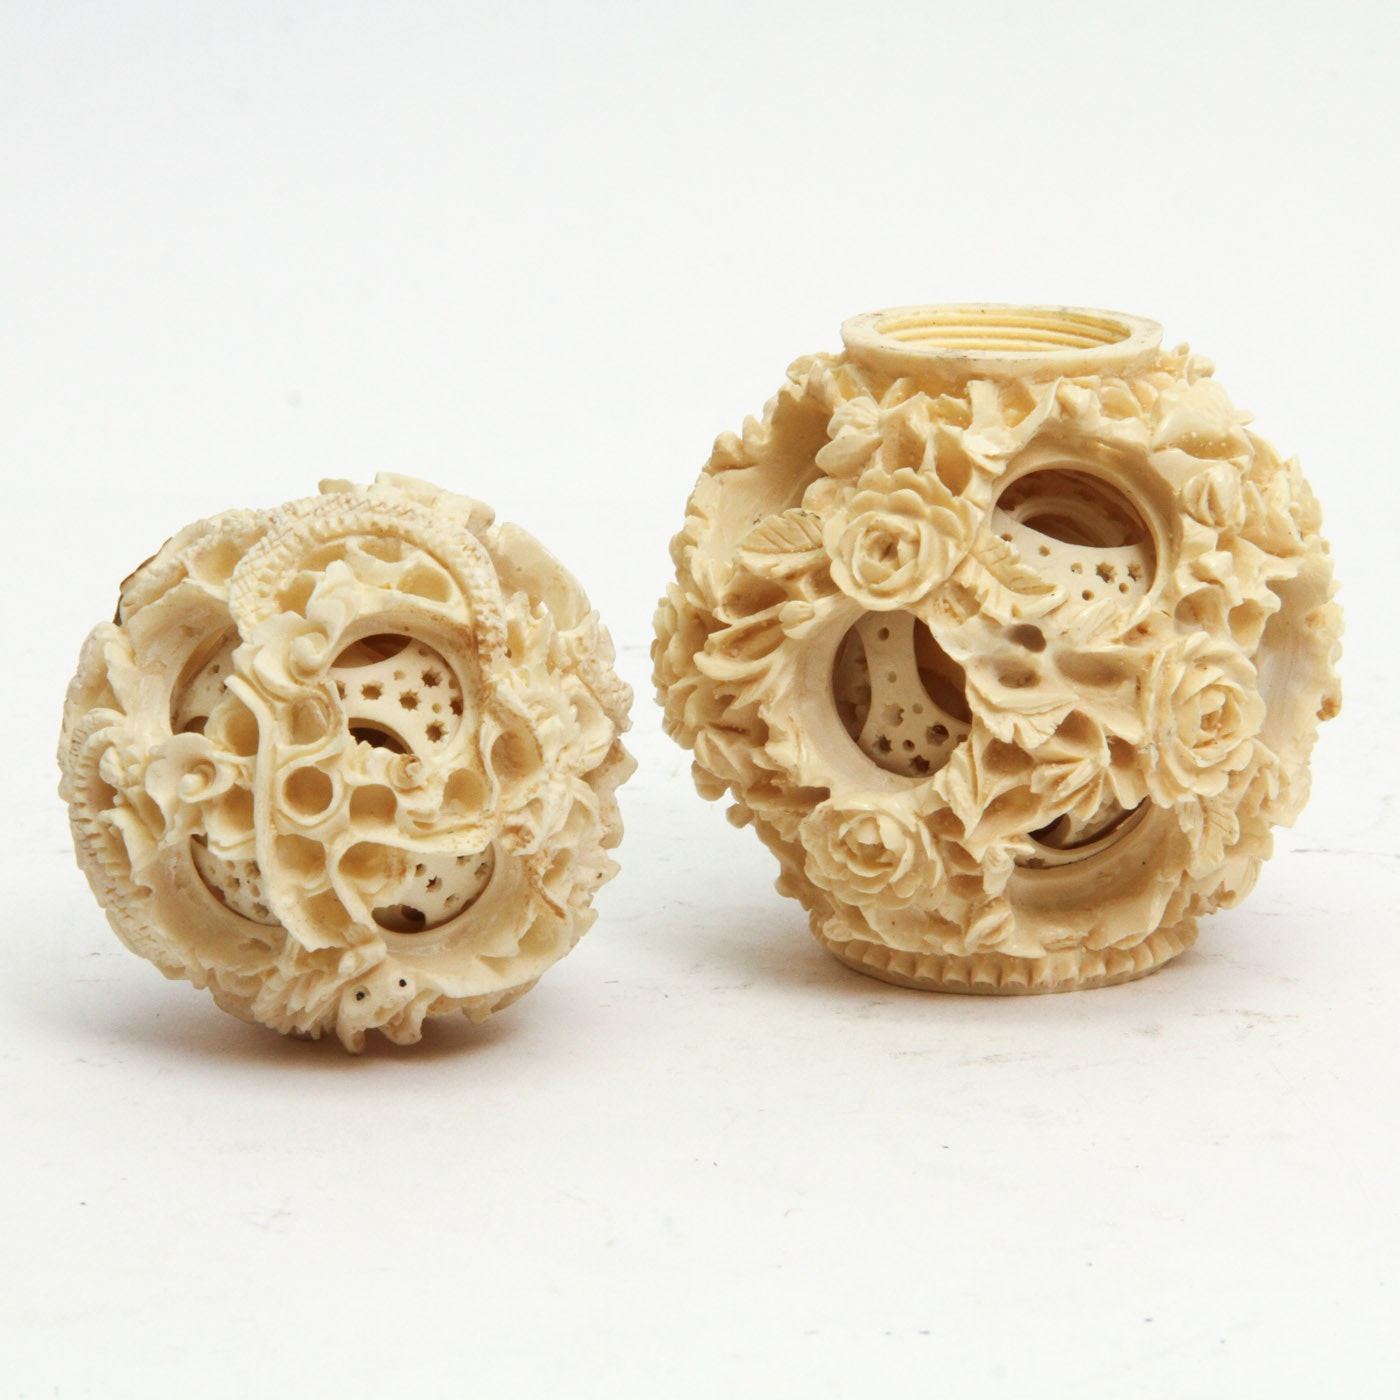 Collection of Two Resin Chinese Puzzle Balls